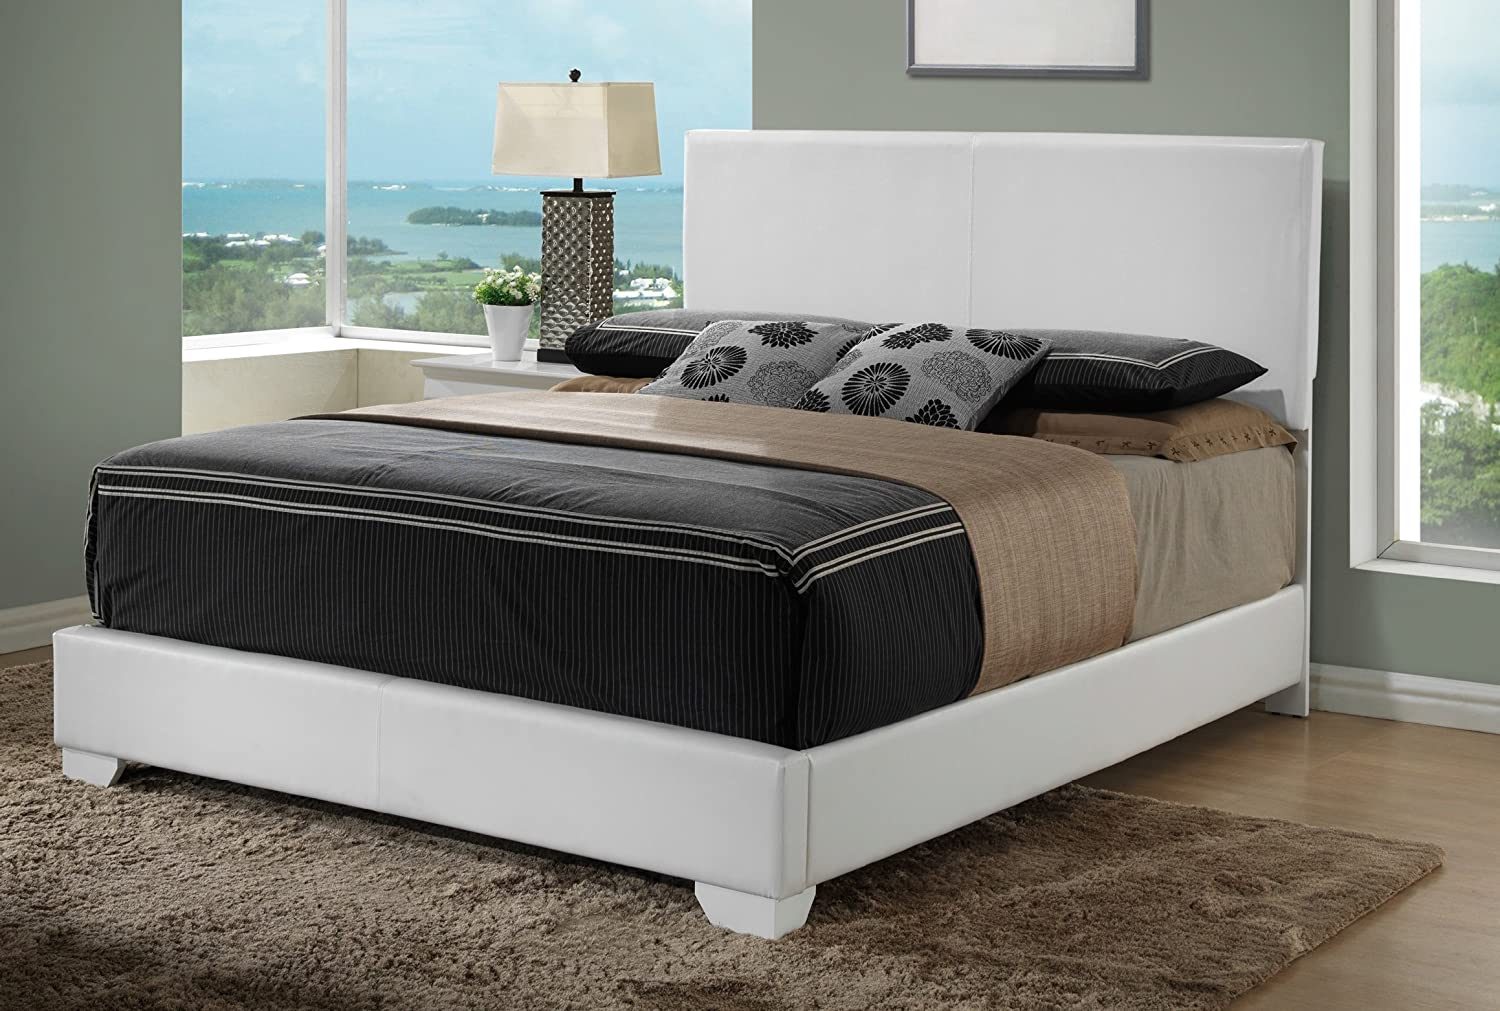 Amazon.com: Beige - King Size - Modern Headboard Leather Look ...